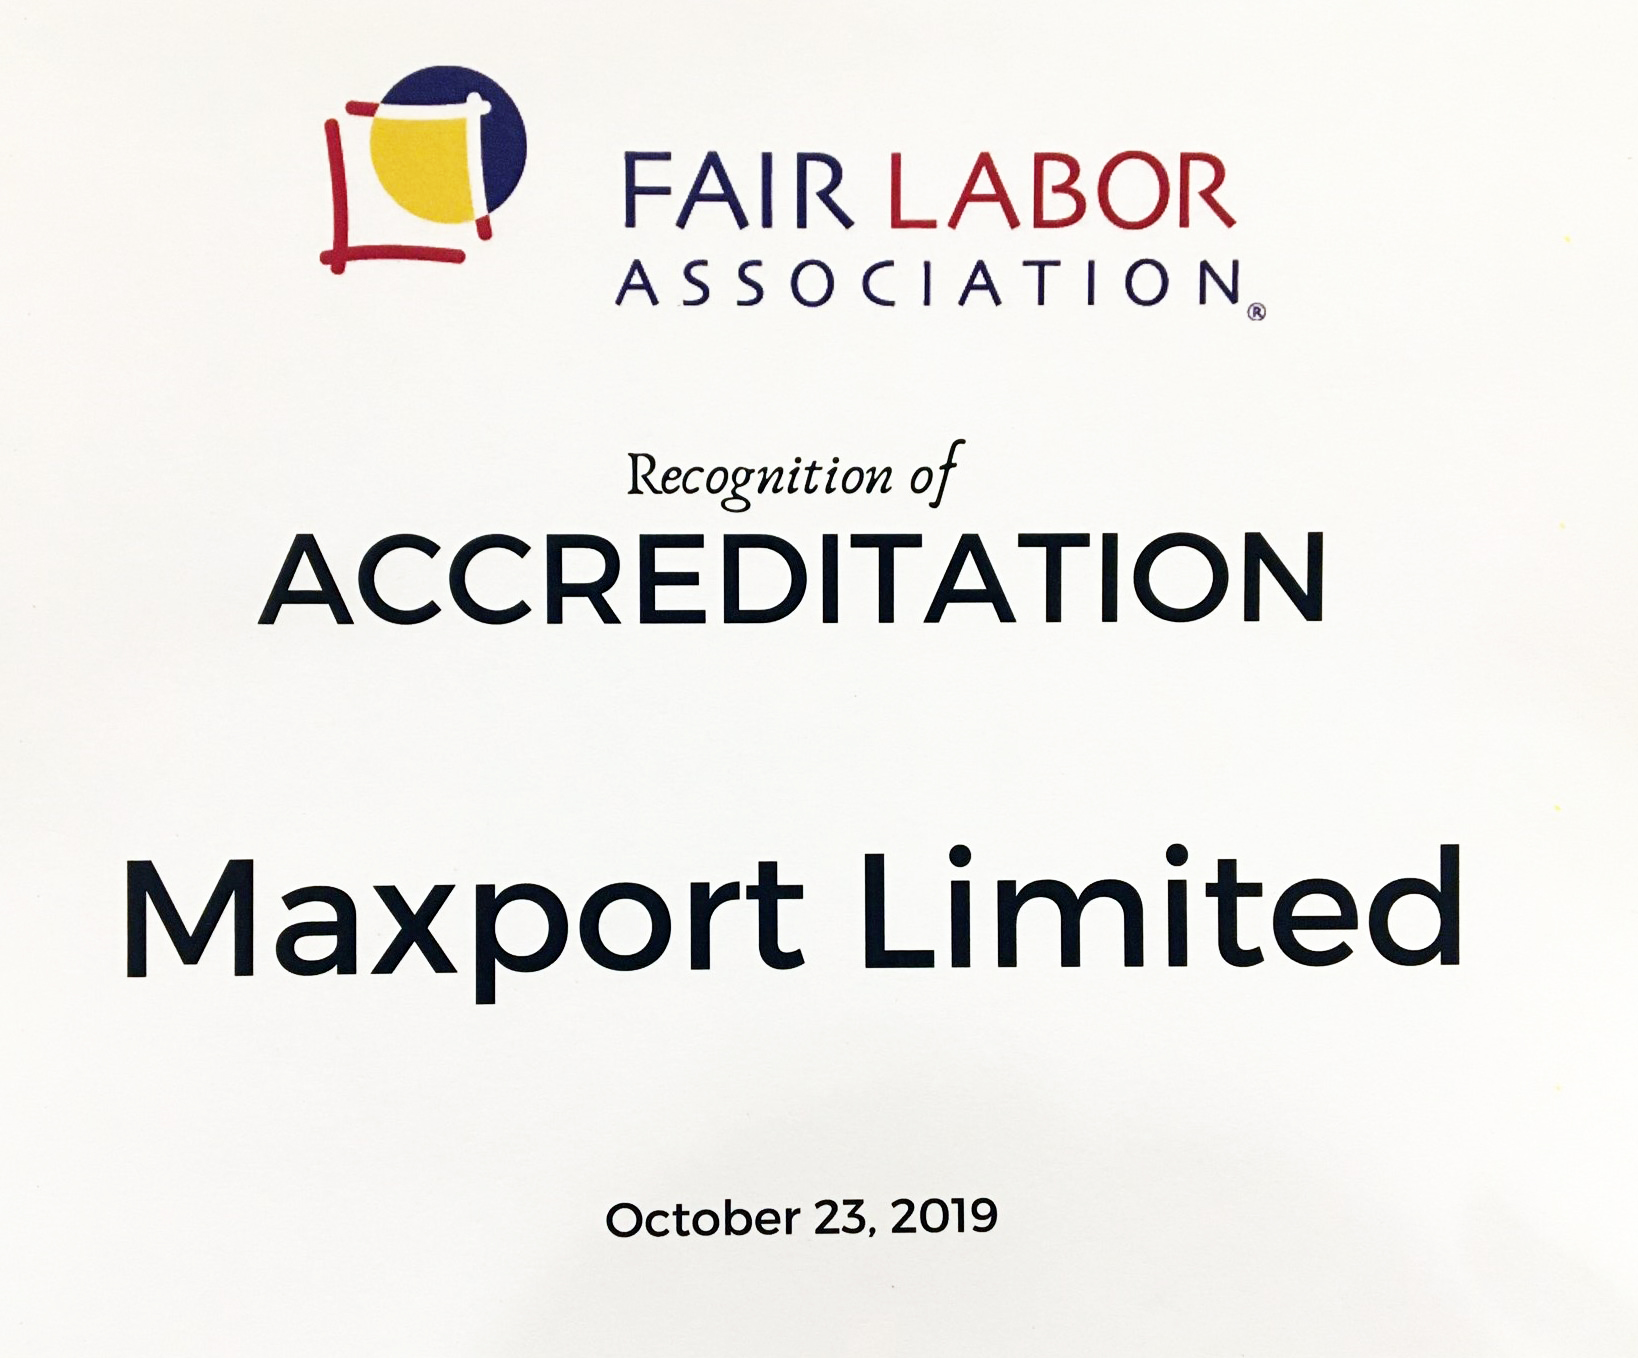 Maxport Limited | Fair Labor Association